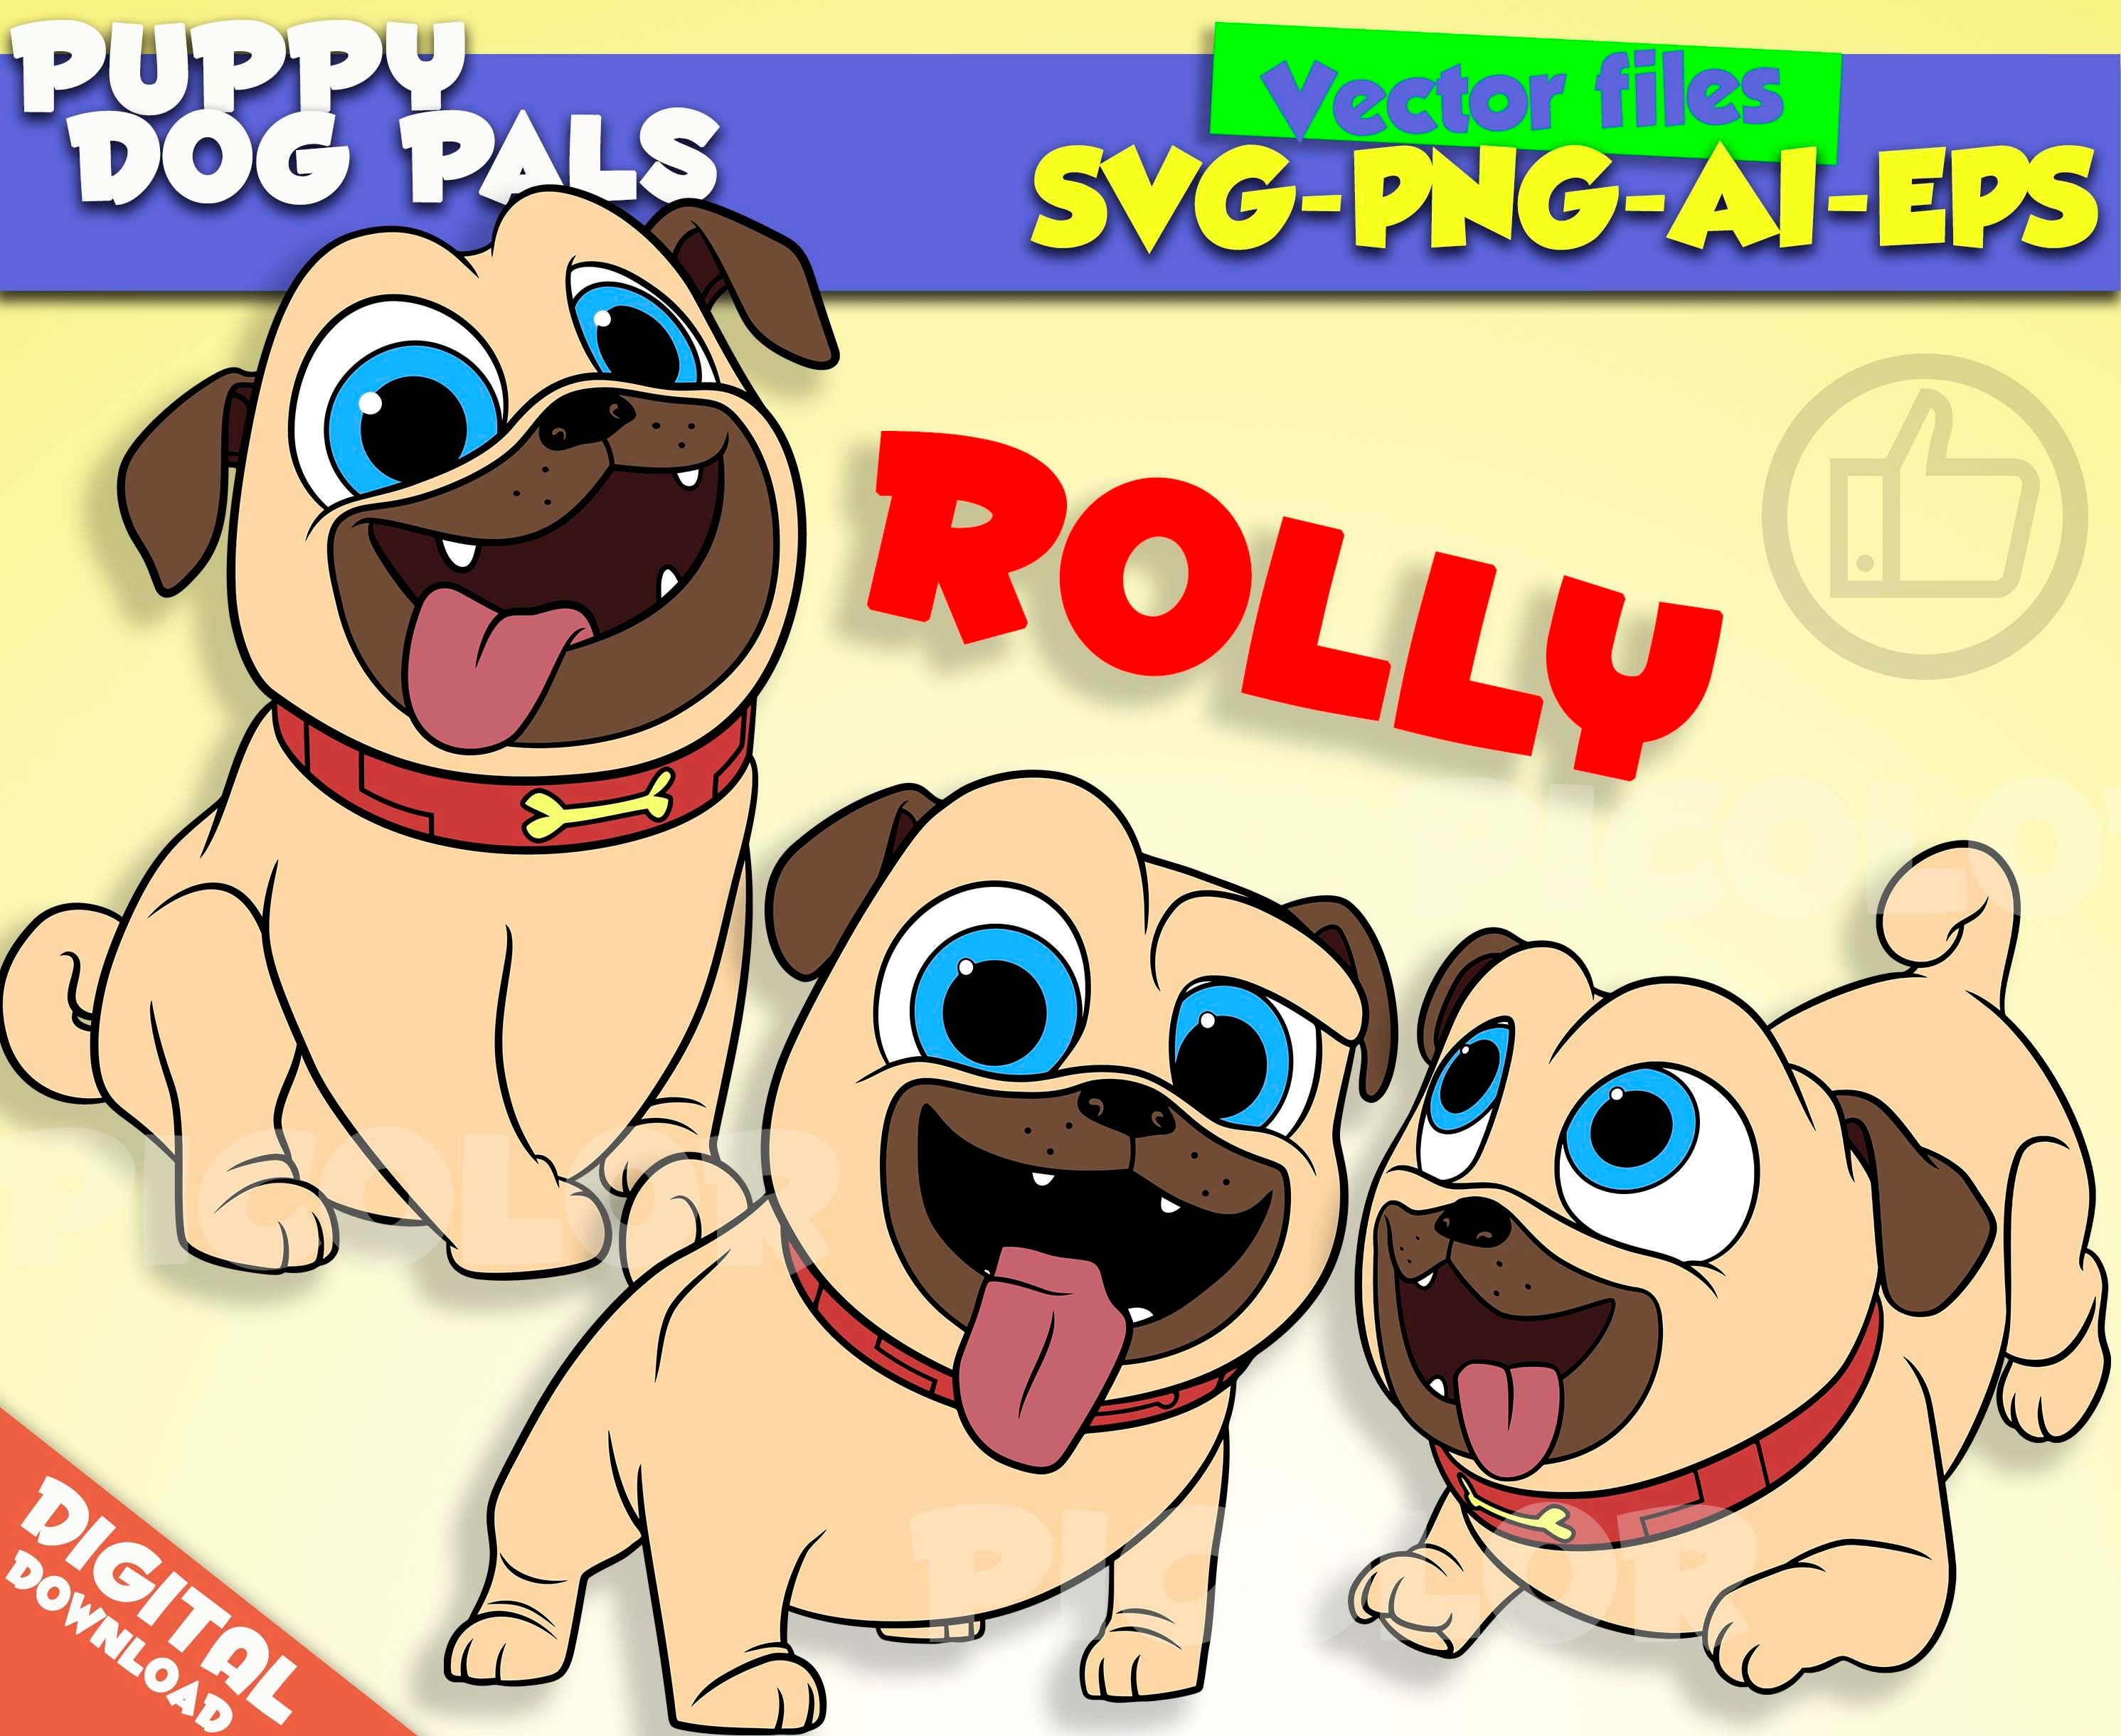 Puppy Dog Pals svg Rolly Puppy Dog Pals clipart Puppy Dog Pals Rolly ...